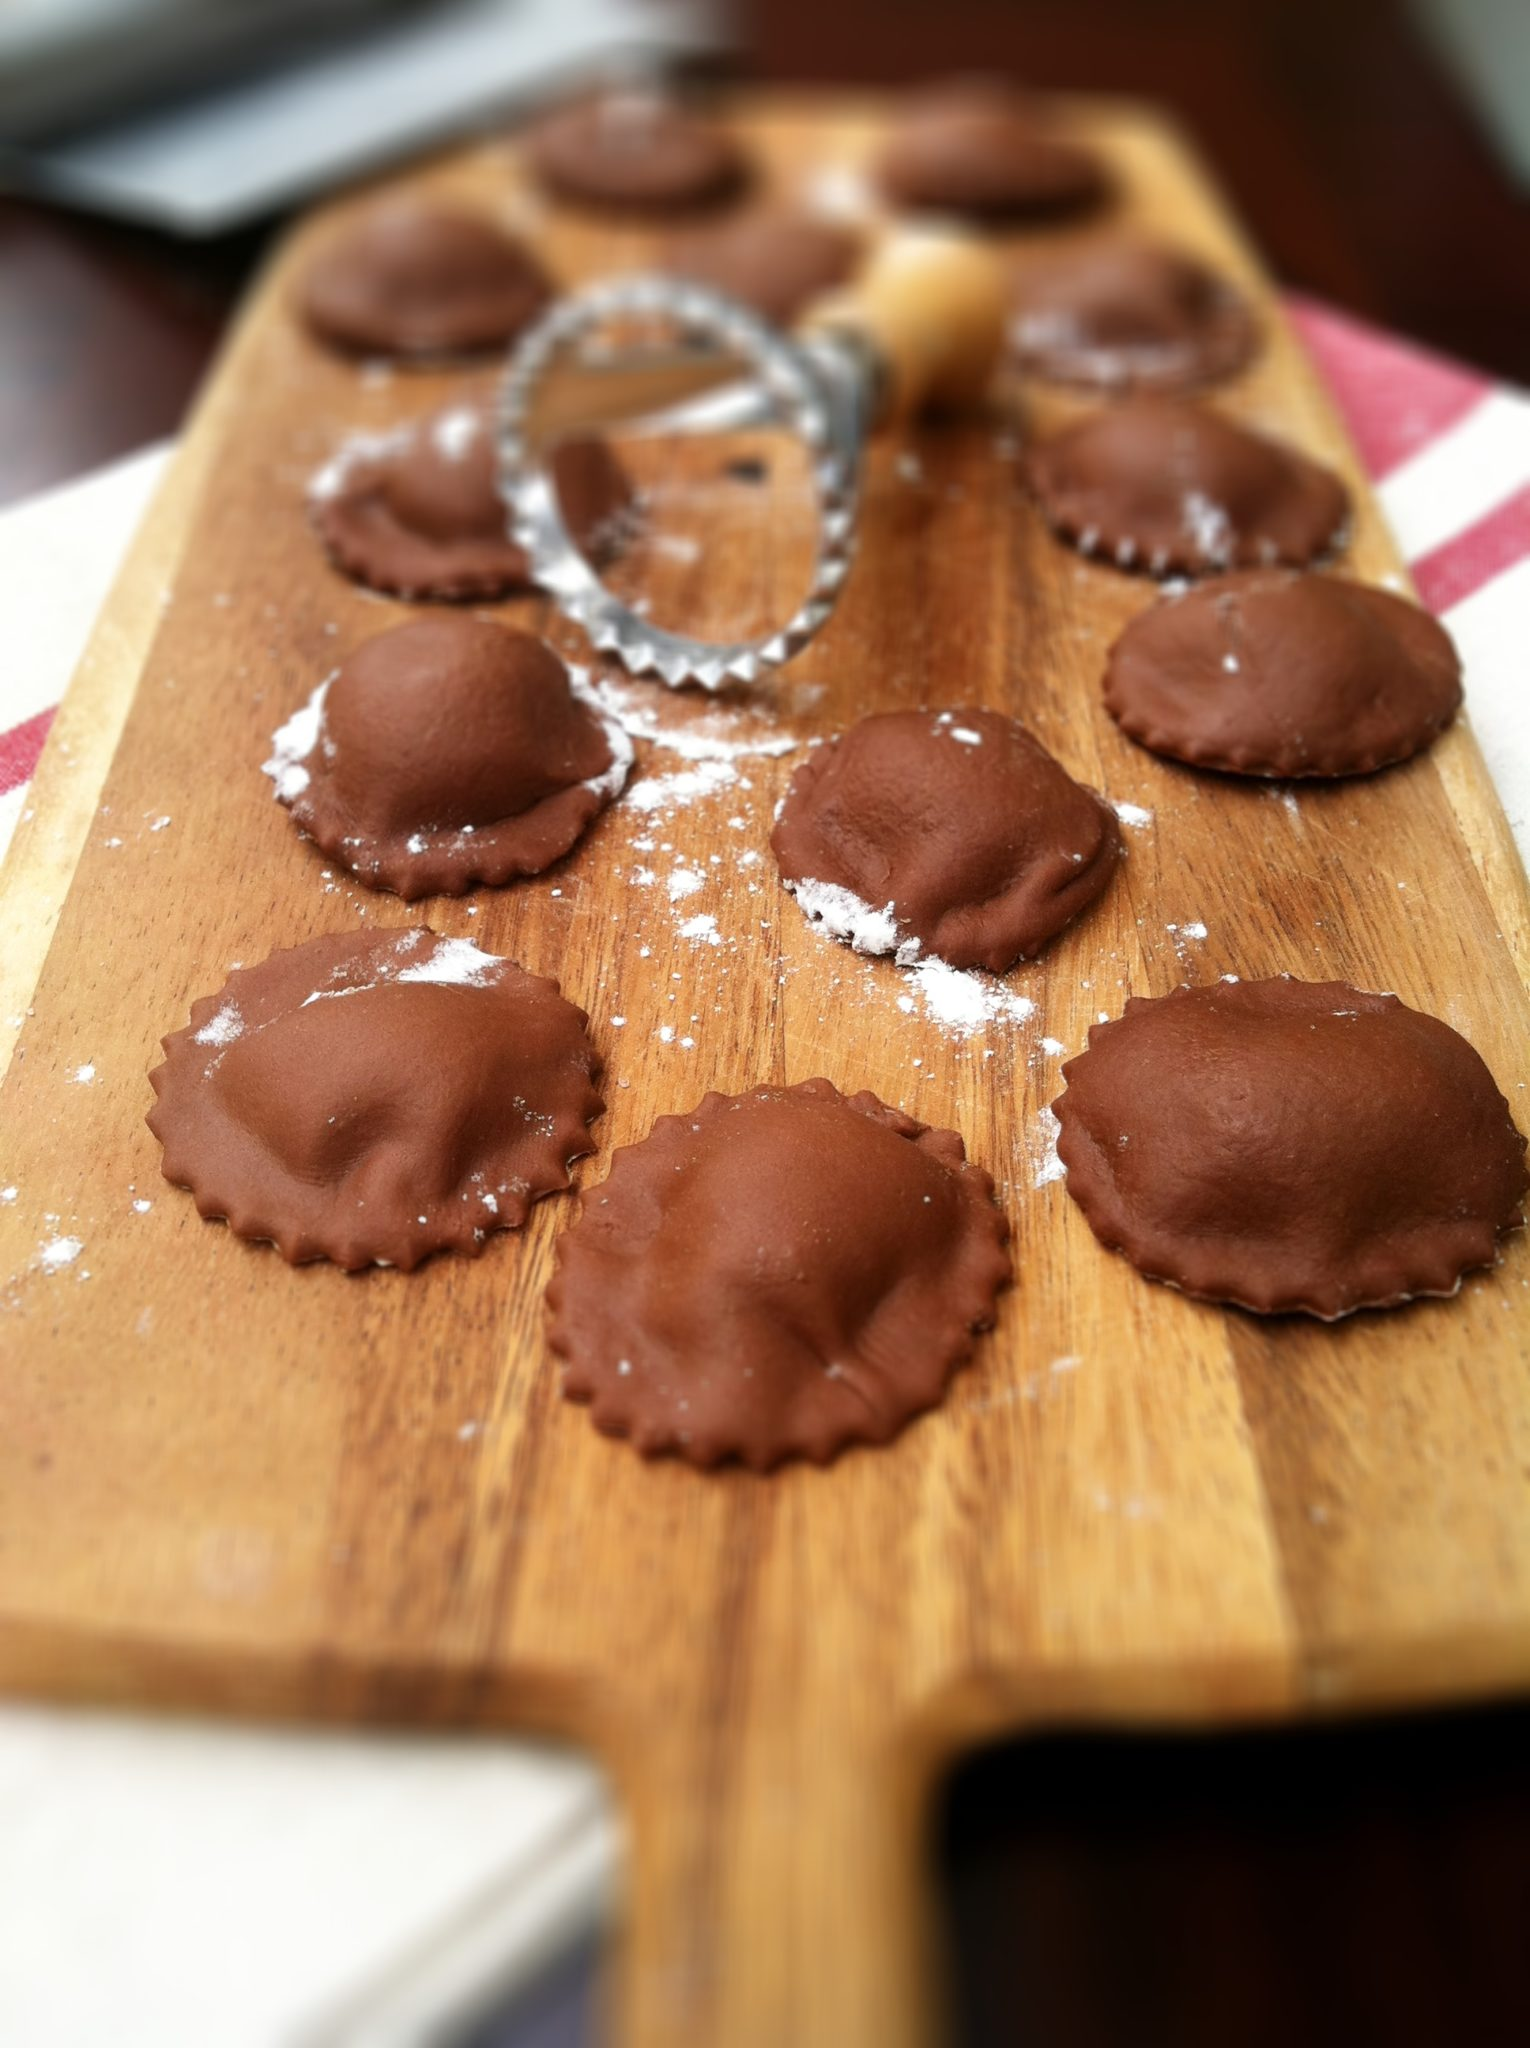 How to Make Chocolate Ravioli | bell' alimento